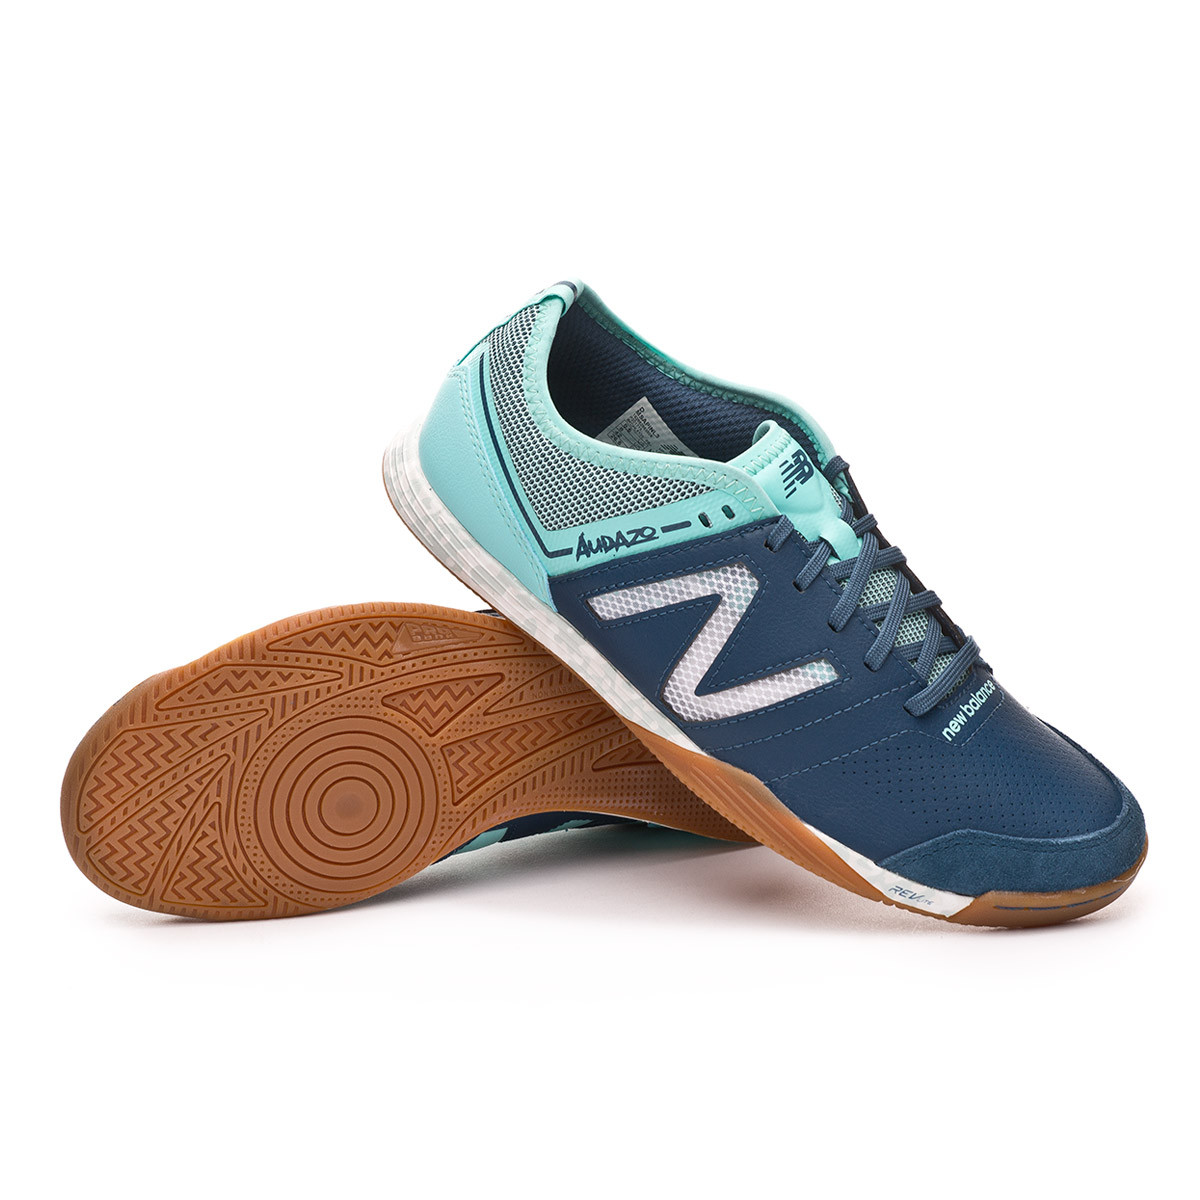 408ab6d55 Futsal Boot New Balance Audazo Pro 3.0 Futsal Blue-White - Football store  Fútbol Emotion